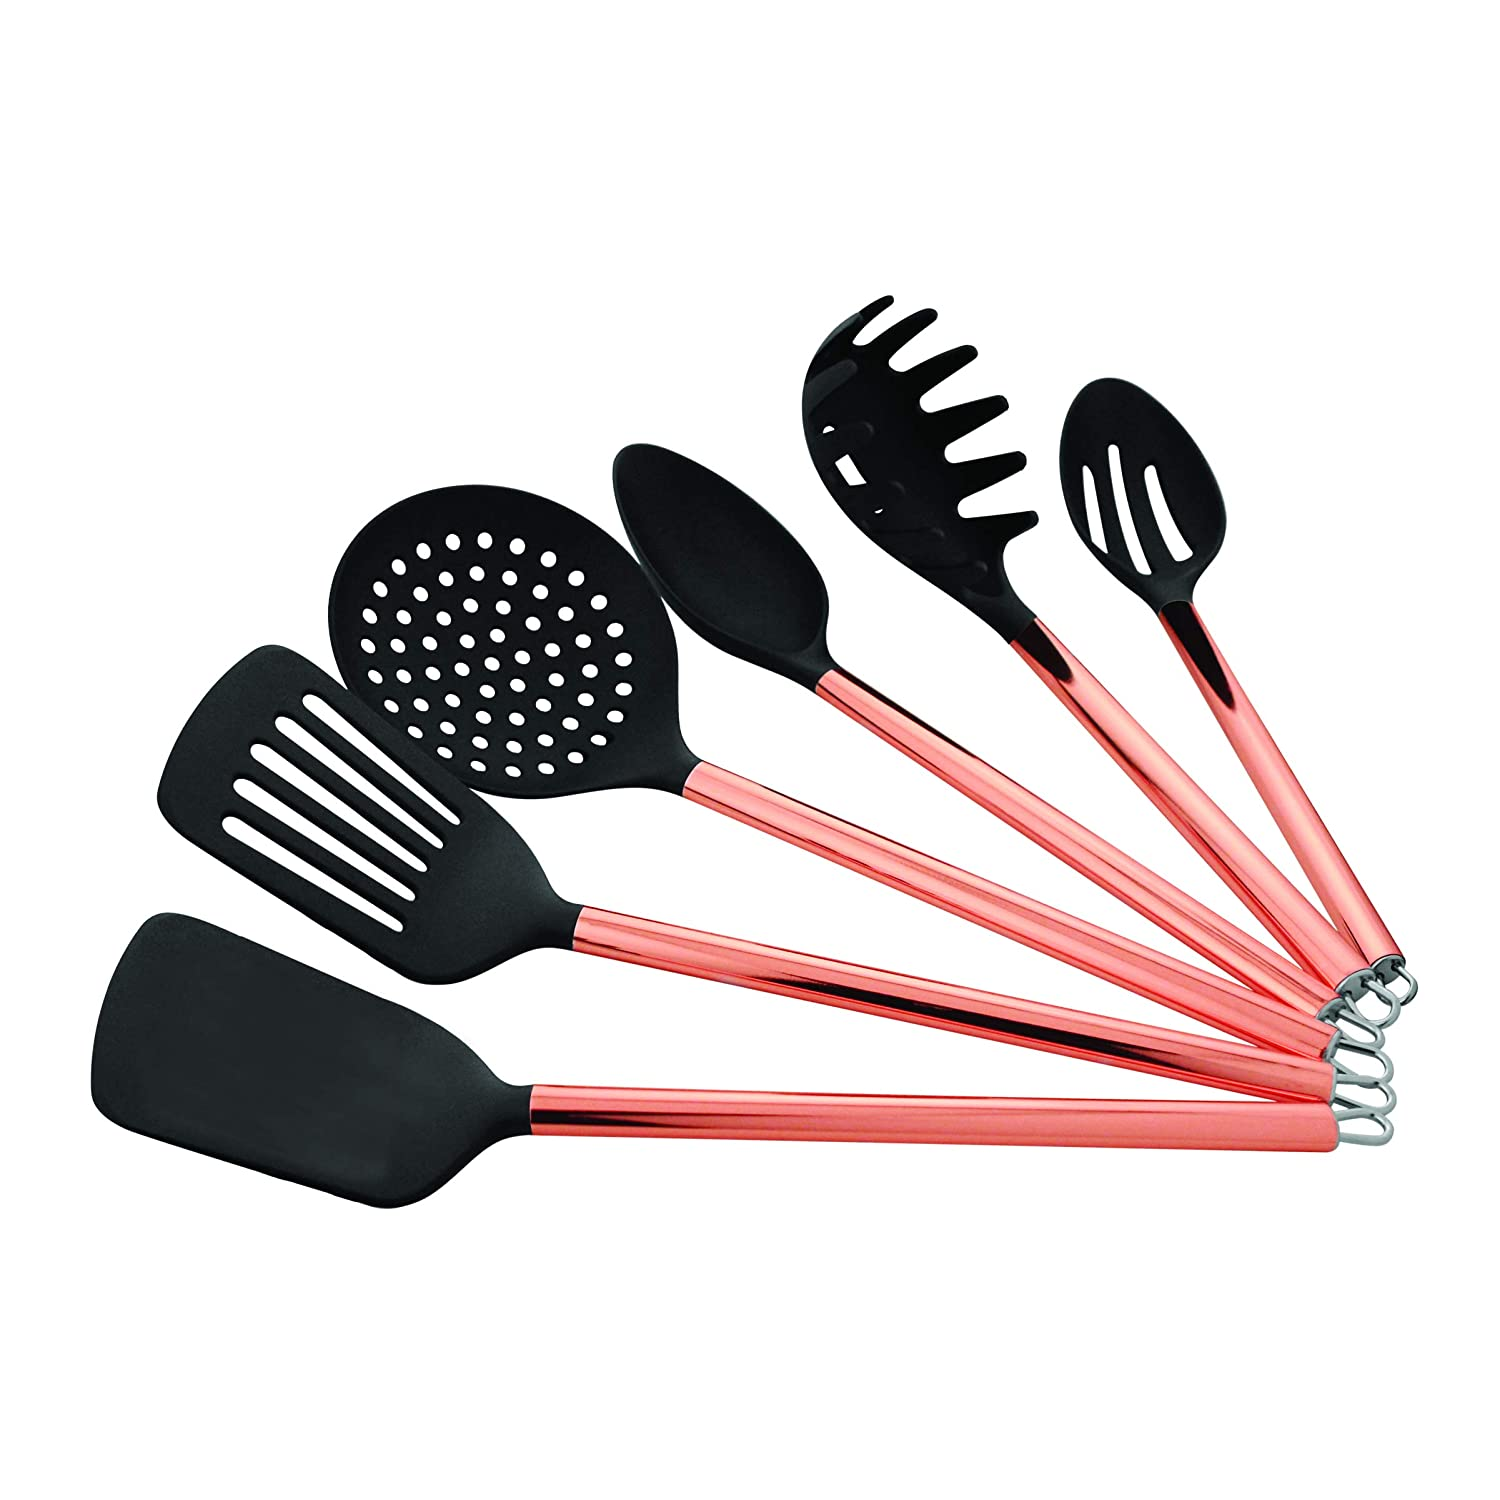 Stainless Steel Old Dutch International Copper Set Kitchen Tools /& Caddy Rose Gold Old Dutch 1512 15 Pc Black